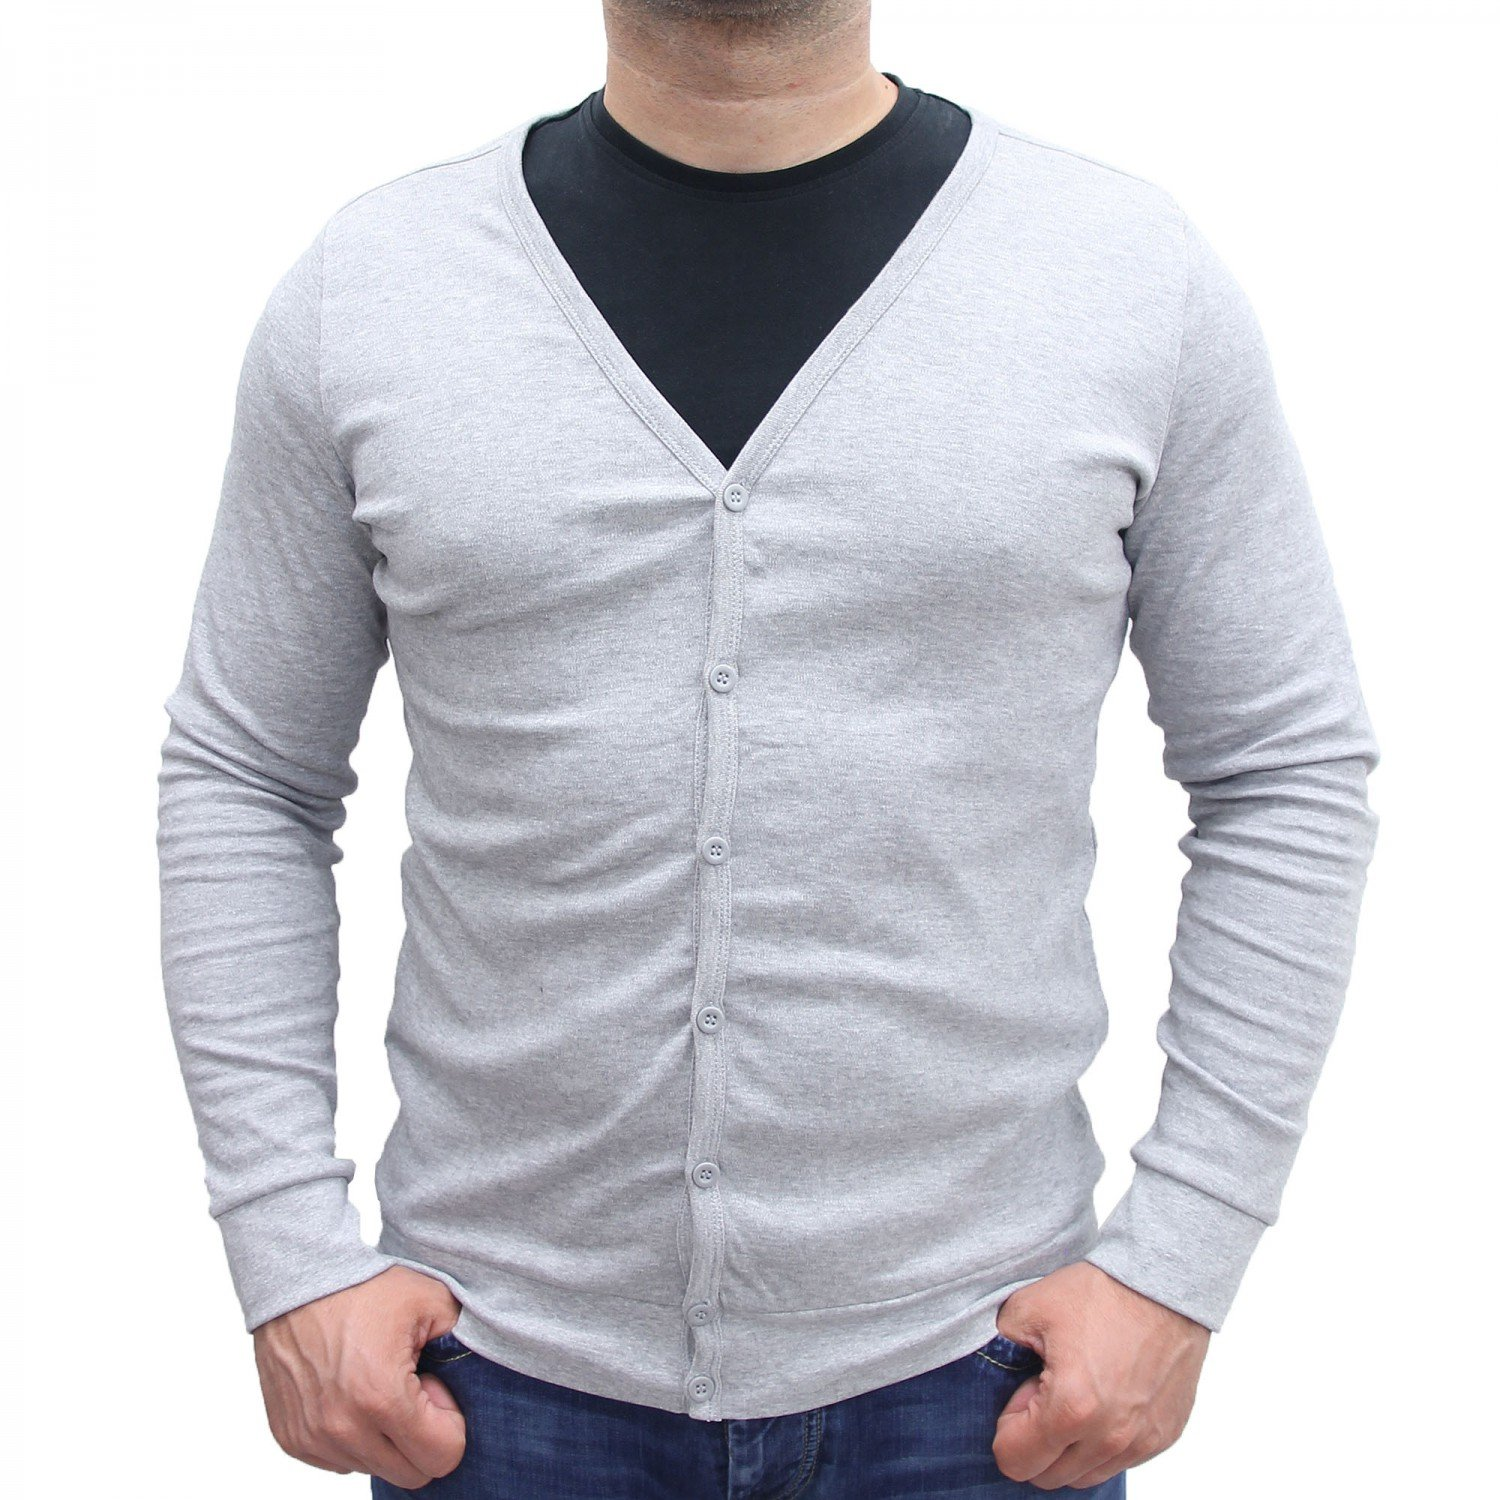 98?-?86?Men's Summer Cardigan Long-Sleeved Jacket Sweater Shirt